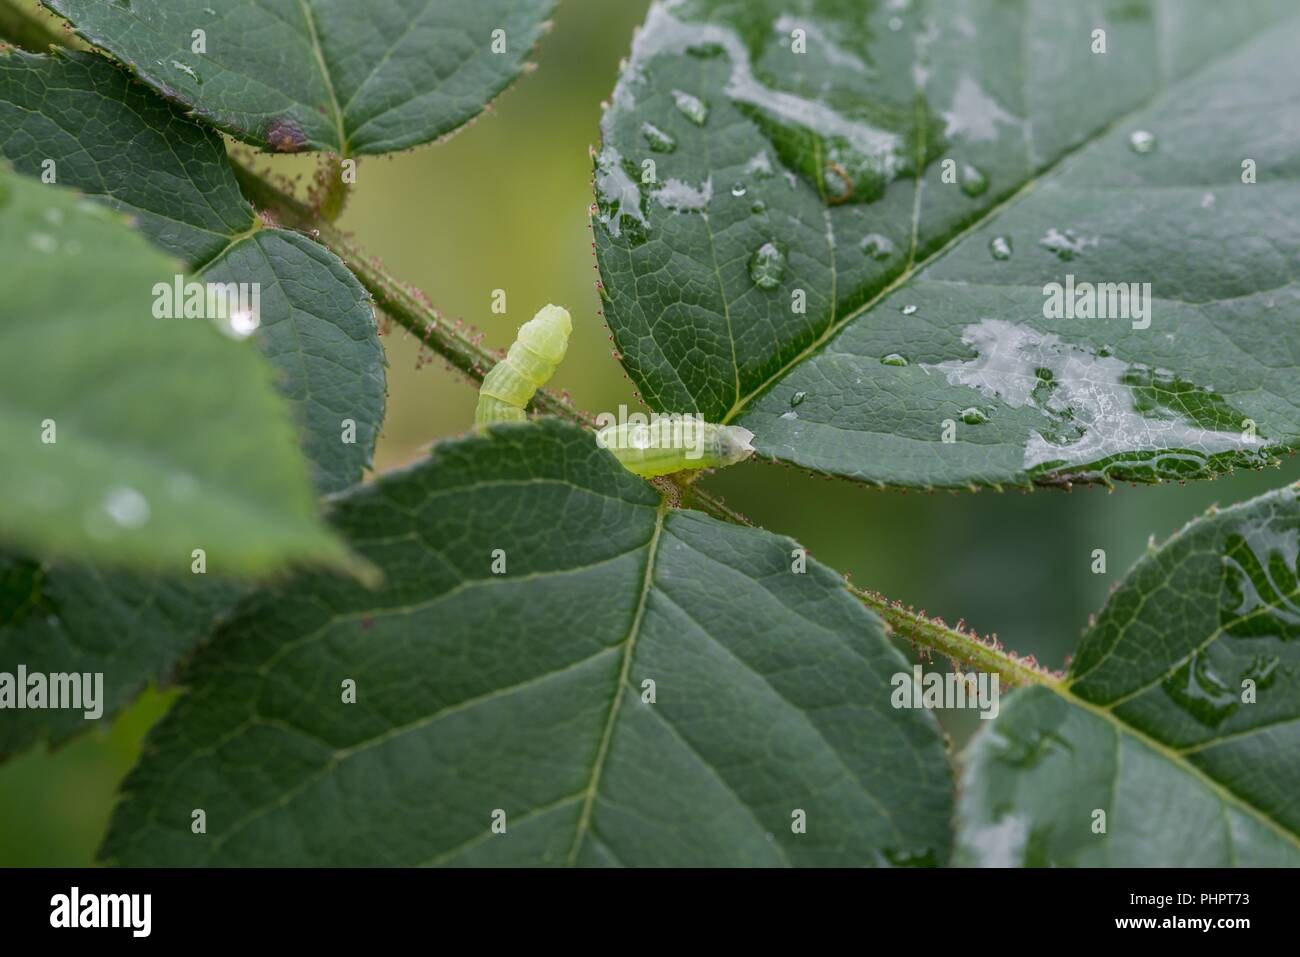 Green caterpillar of the little frostspanner butterfly on green leaves - Stock Image